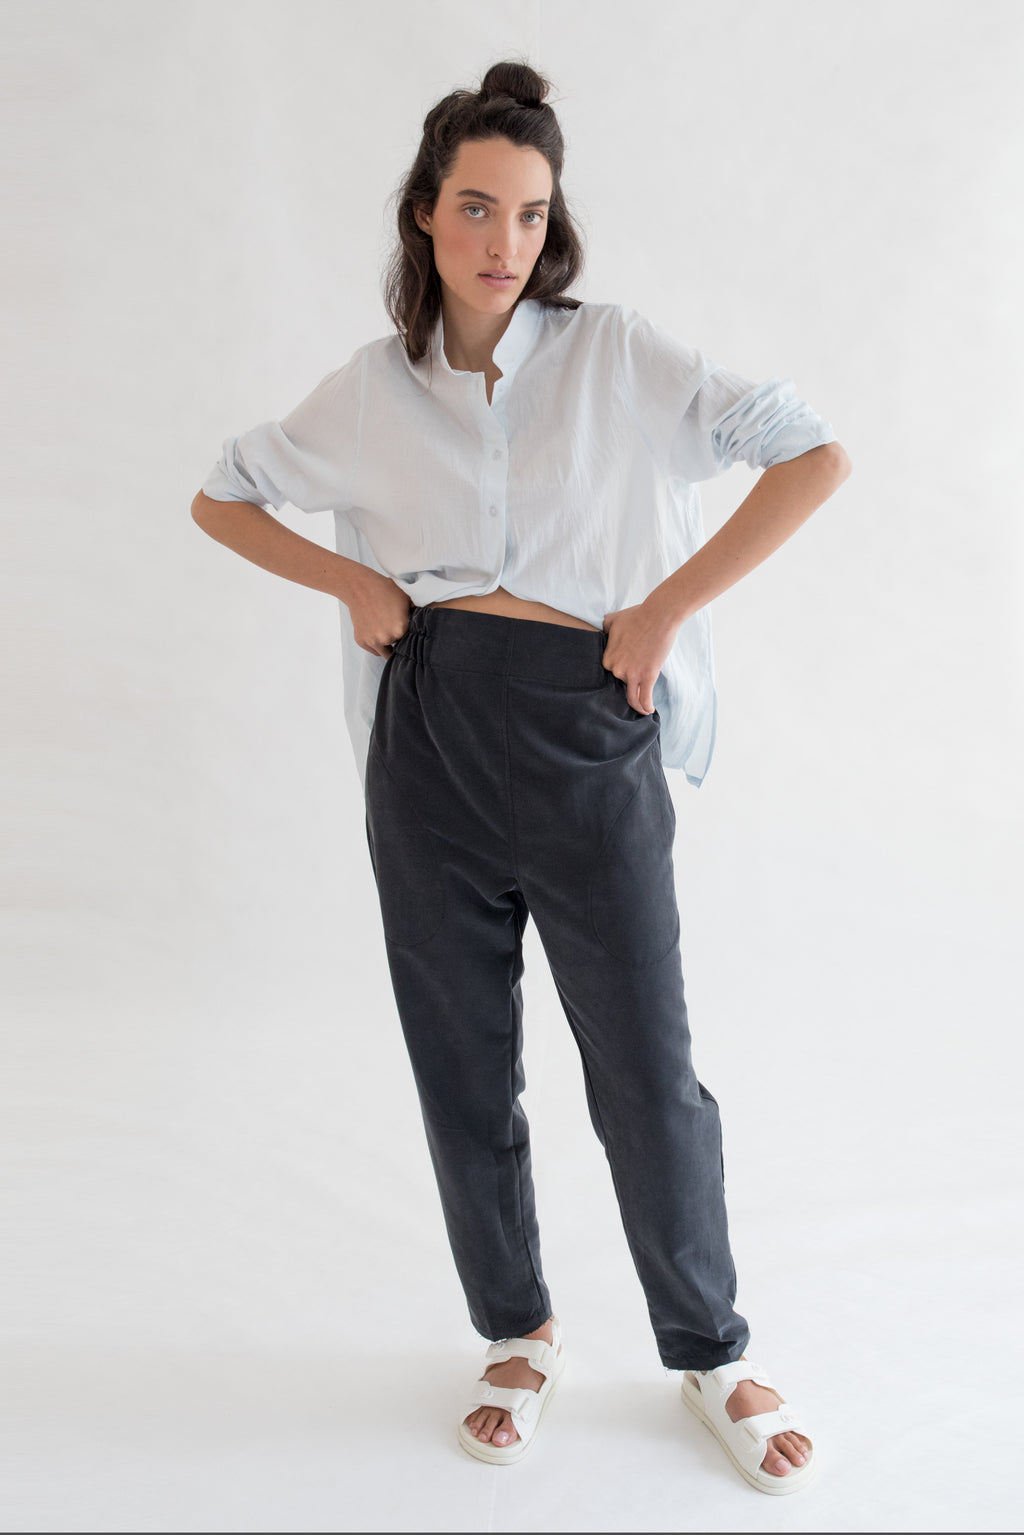 MUTED BLACK High Waist Pants